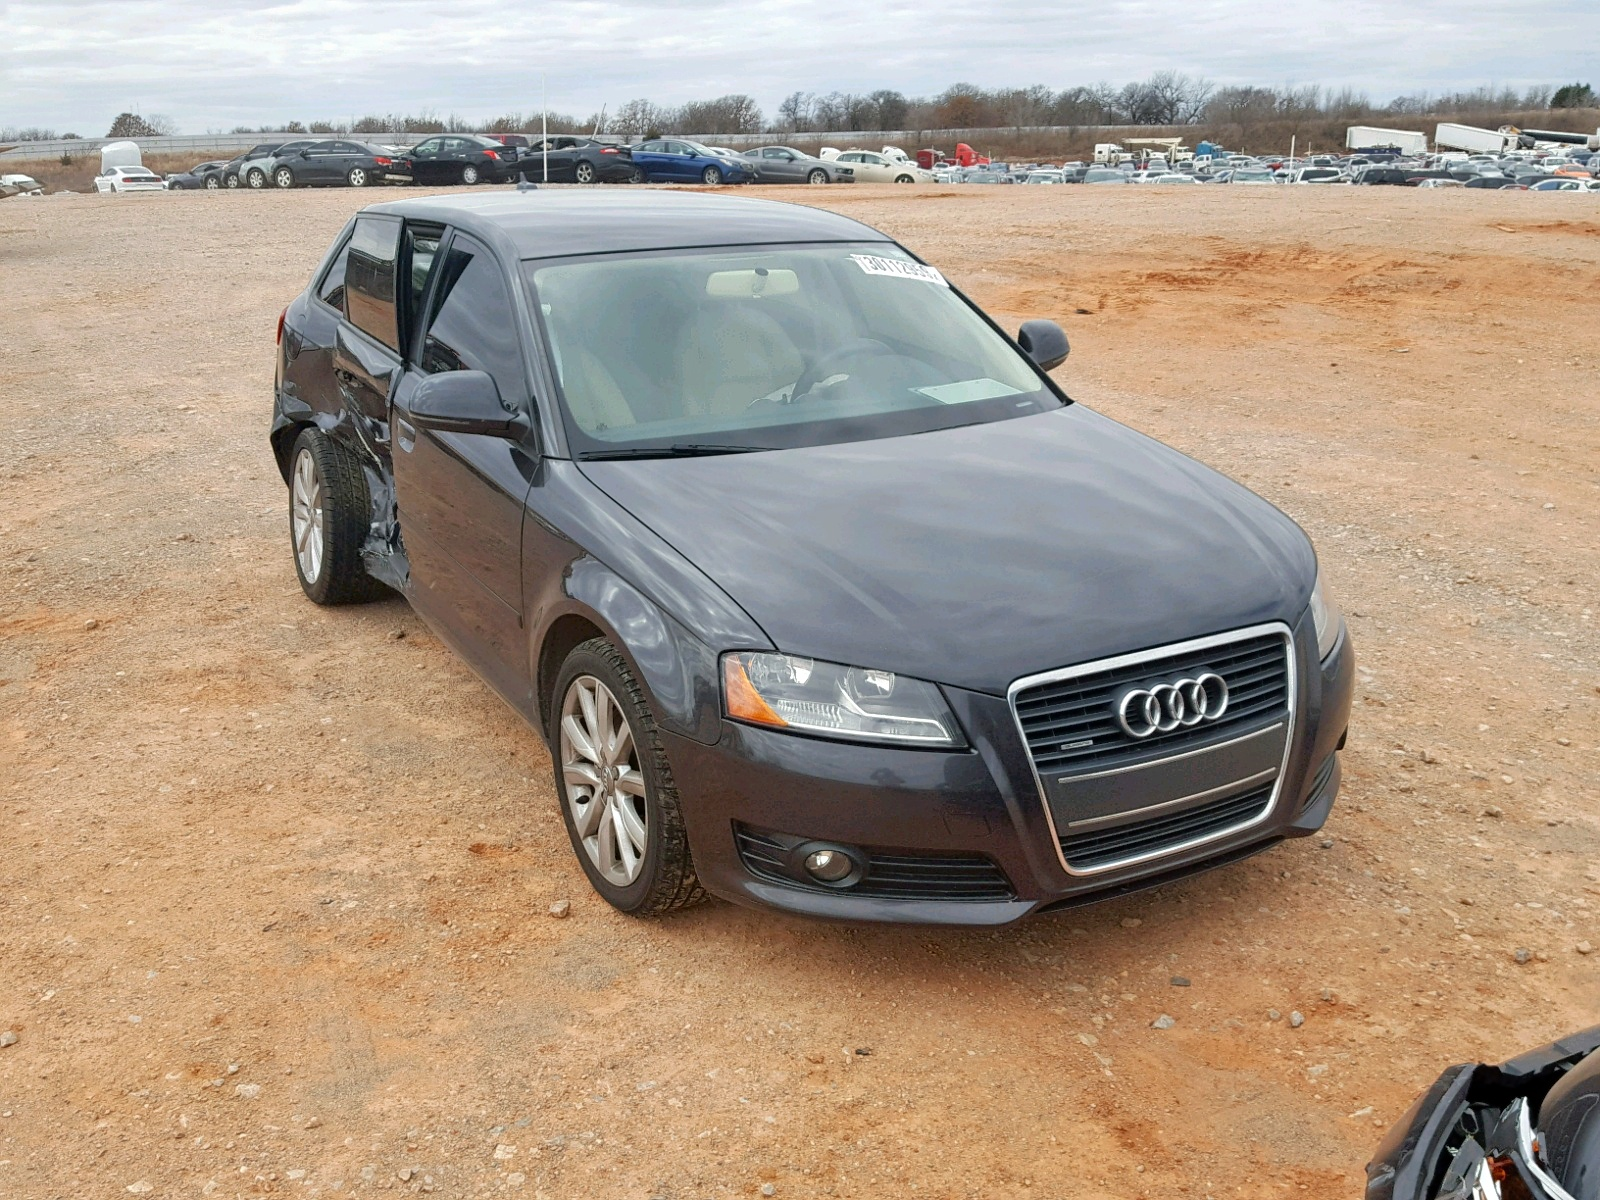 Salvage 2009 Audi A3 2.0T QU for sale